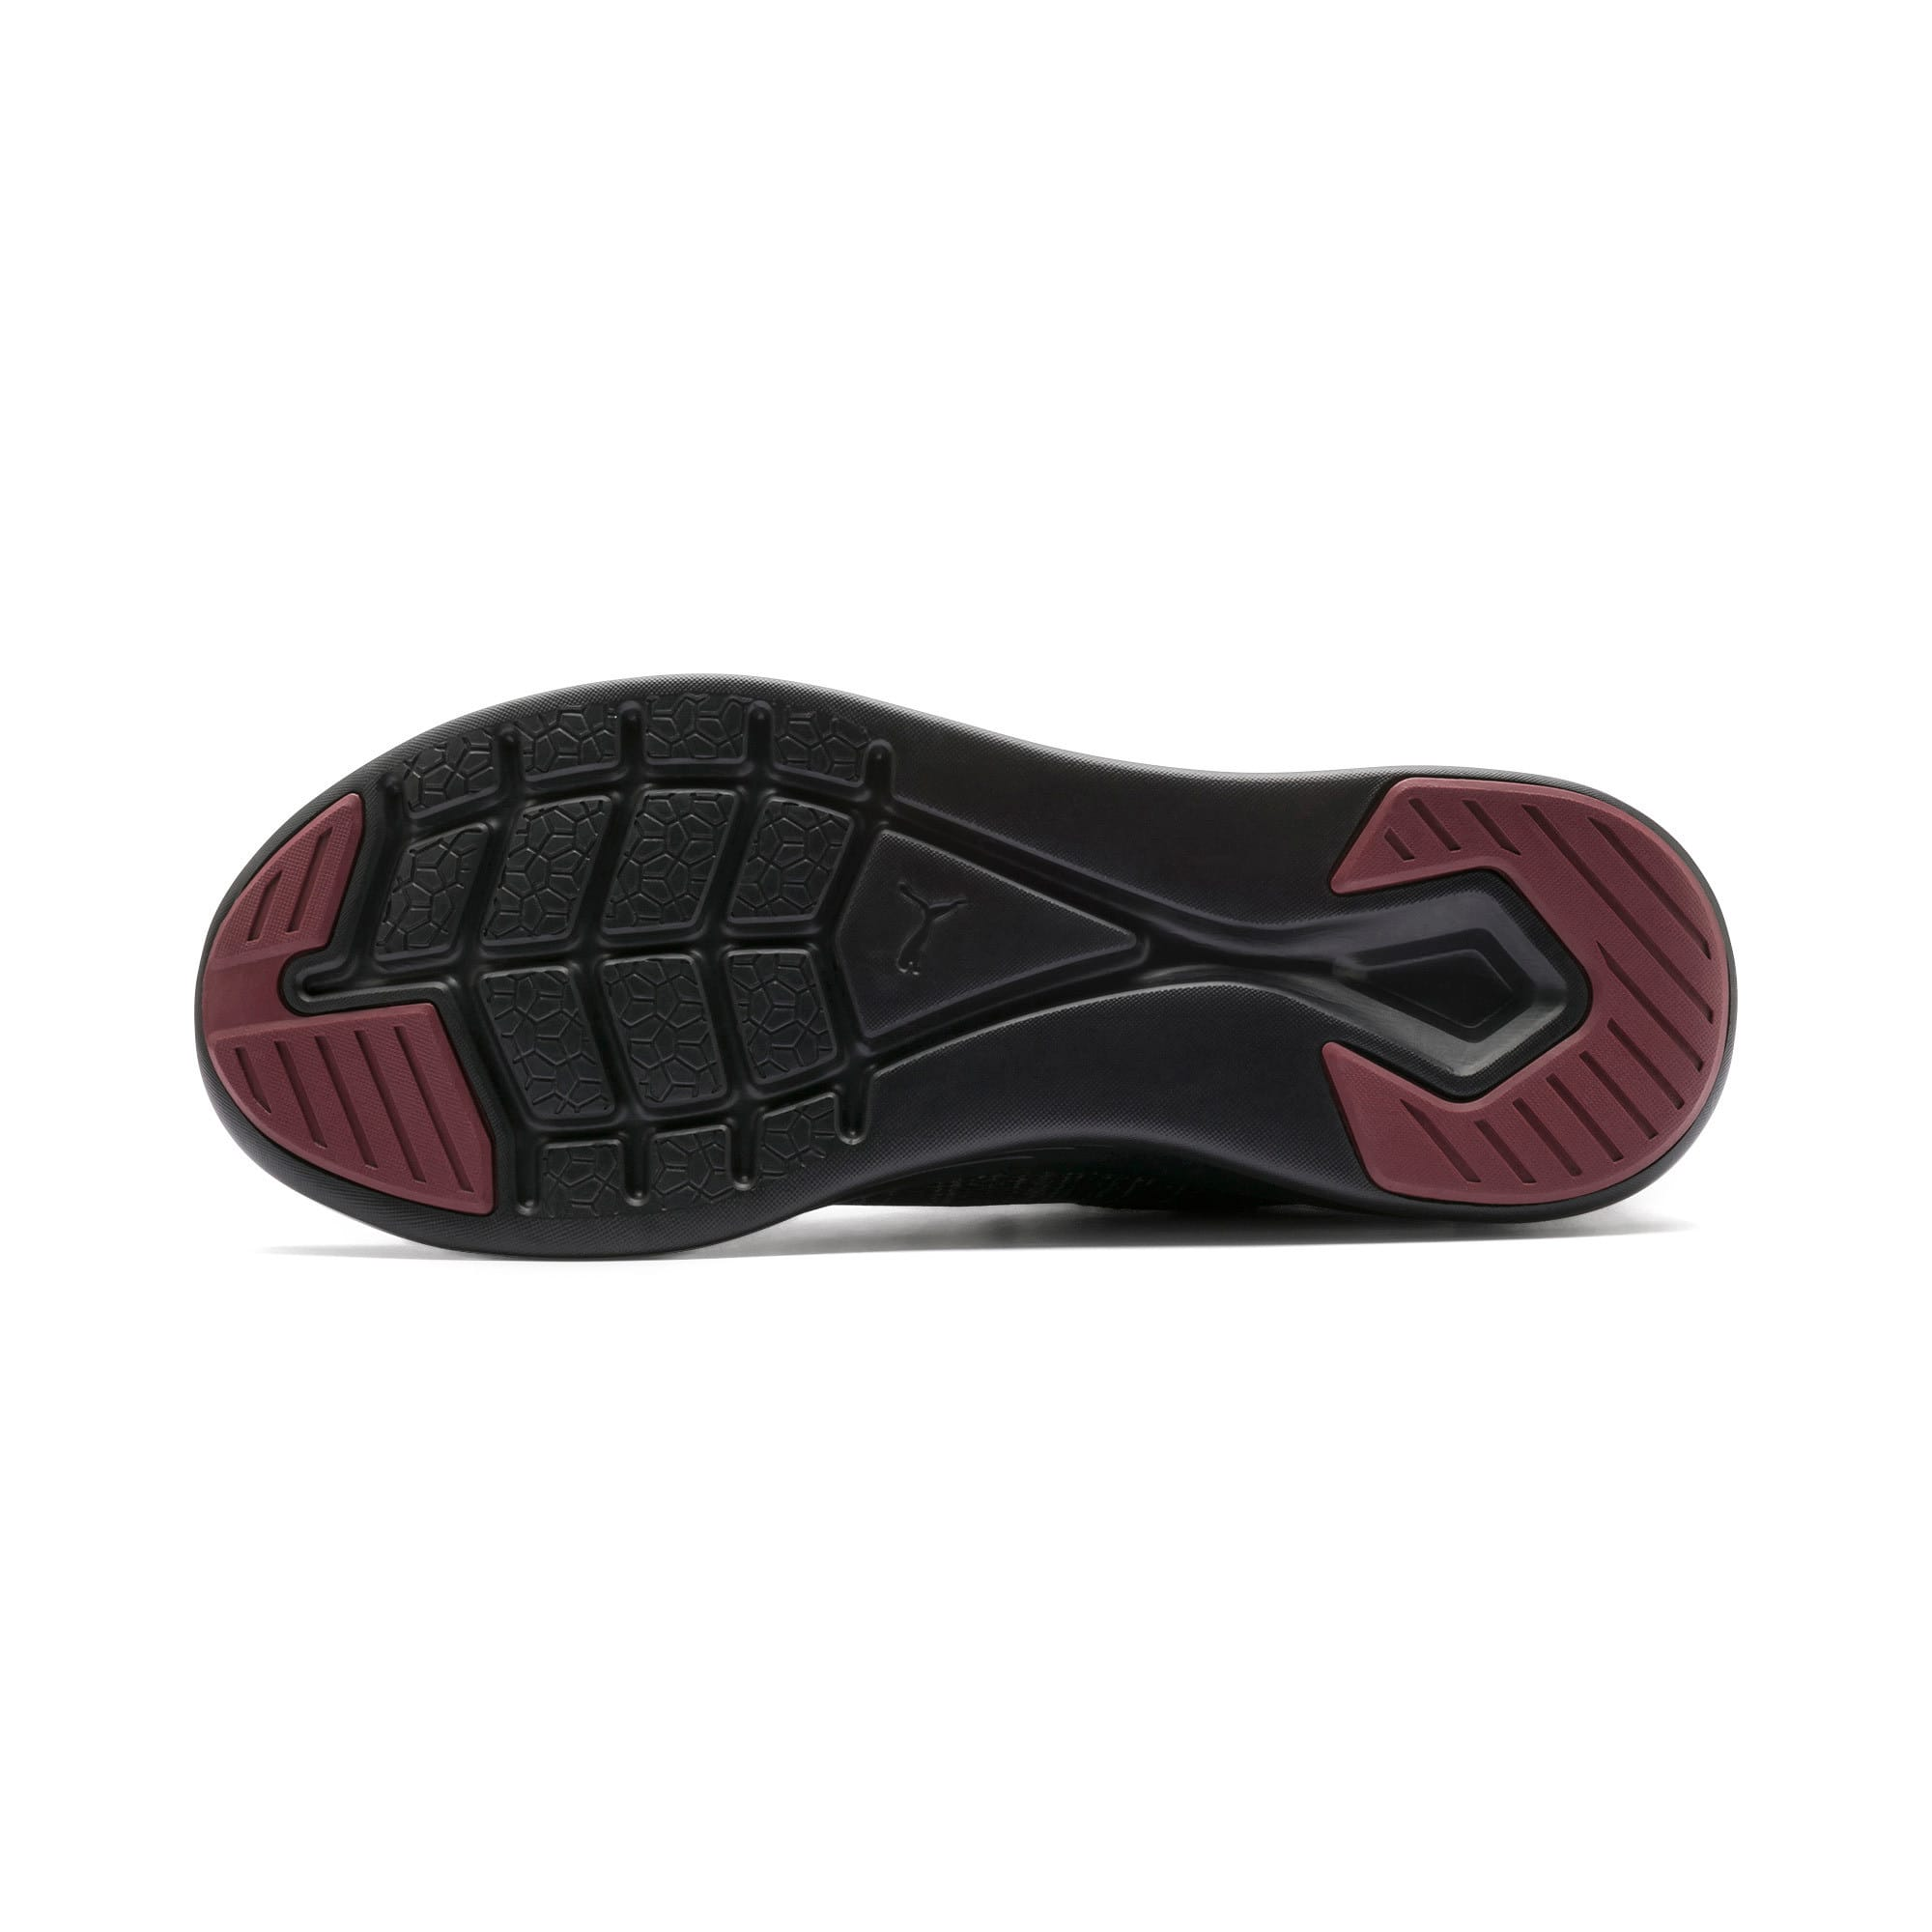 Thumbnail 6 of IGNITE Flash evoKNIT Men's Training Shoes, Puma Black-Rhubarb, medium-IND